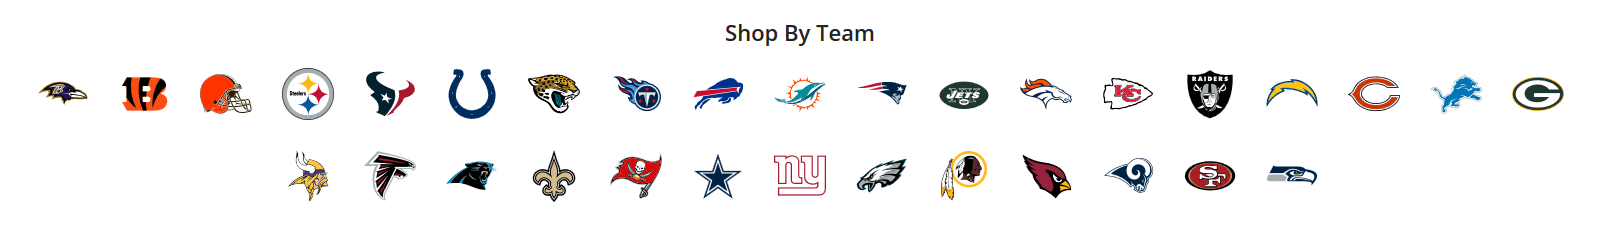 NFL Shop team